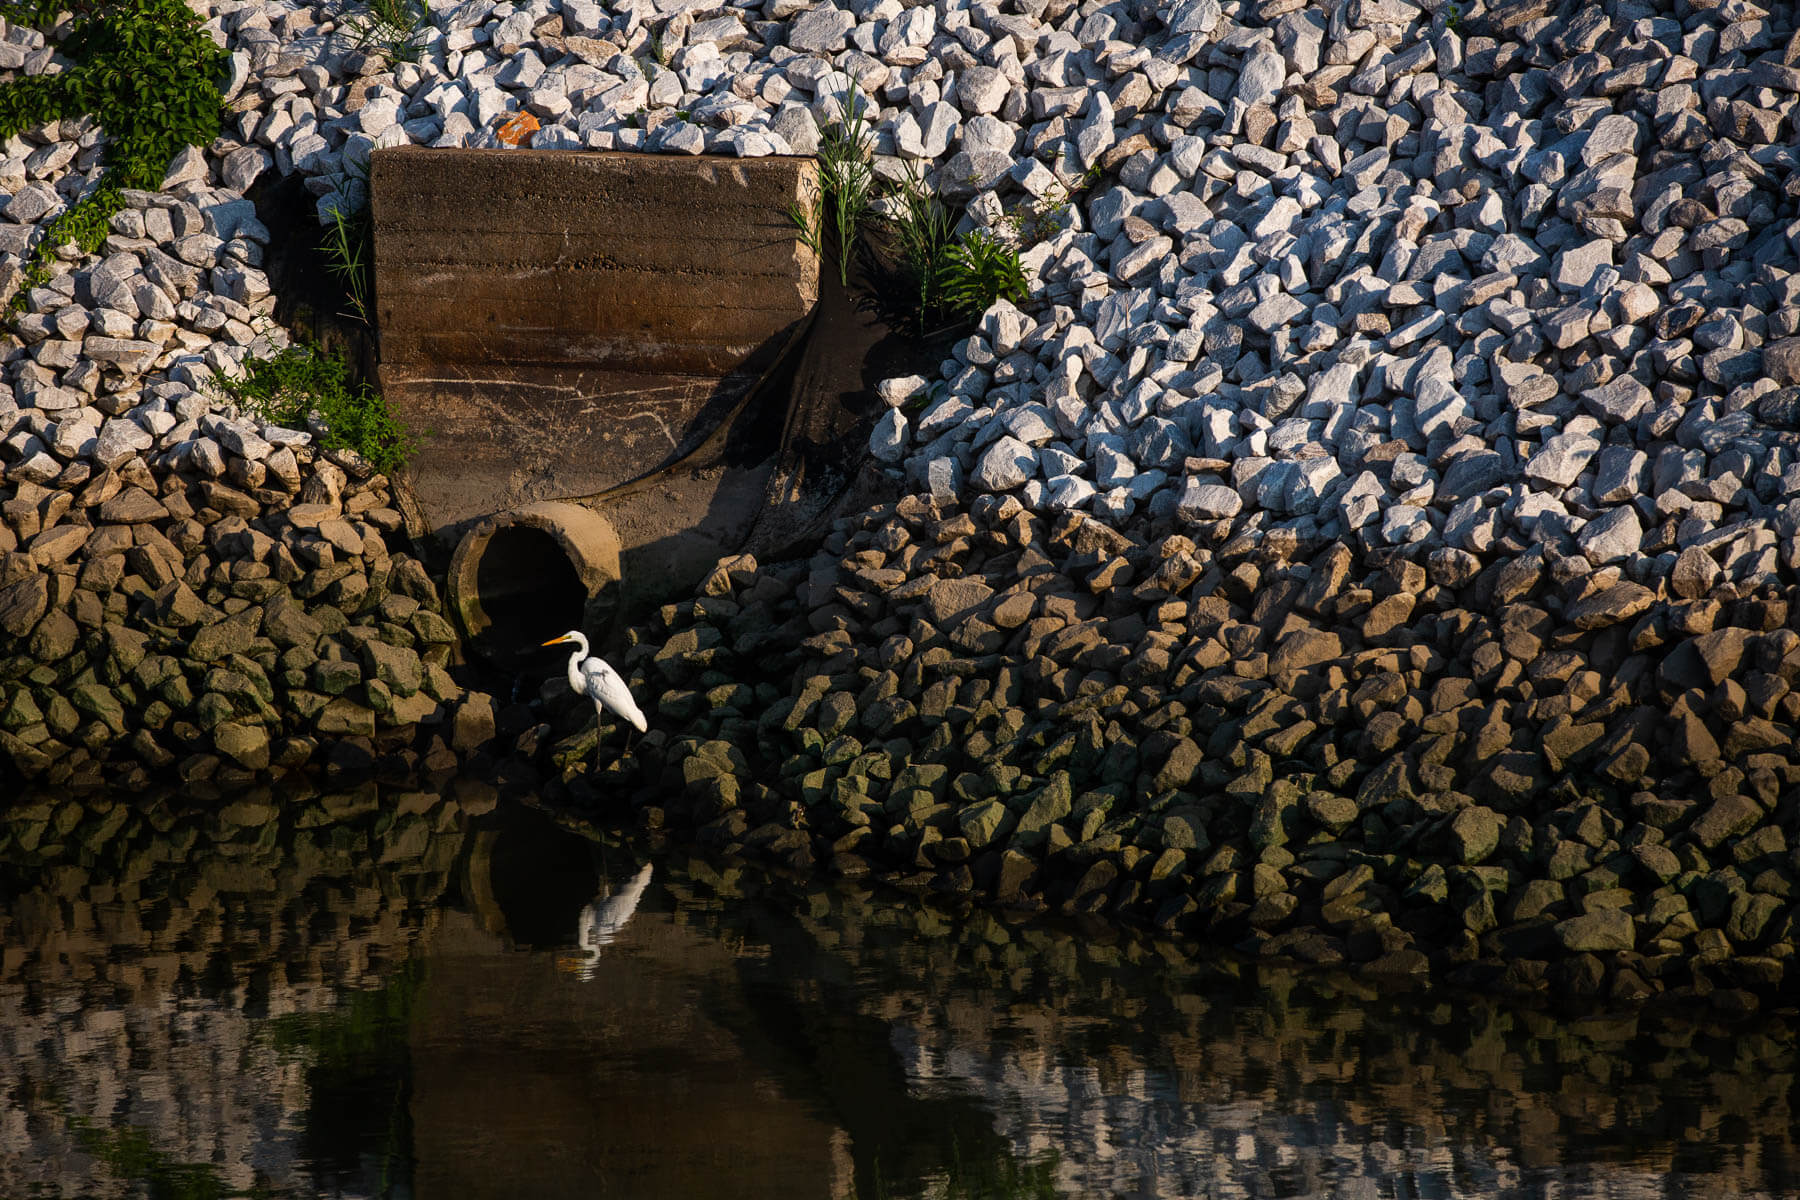 An egret stands next to a drain pipe in the Tiny Mill Canal.